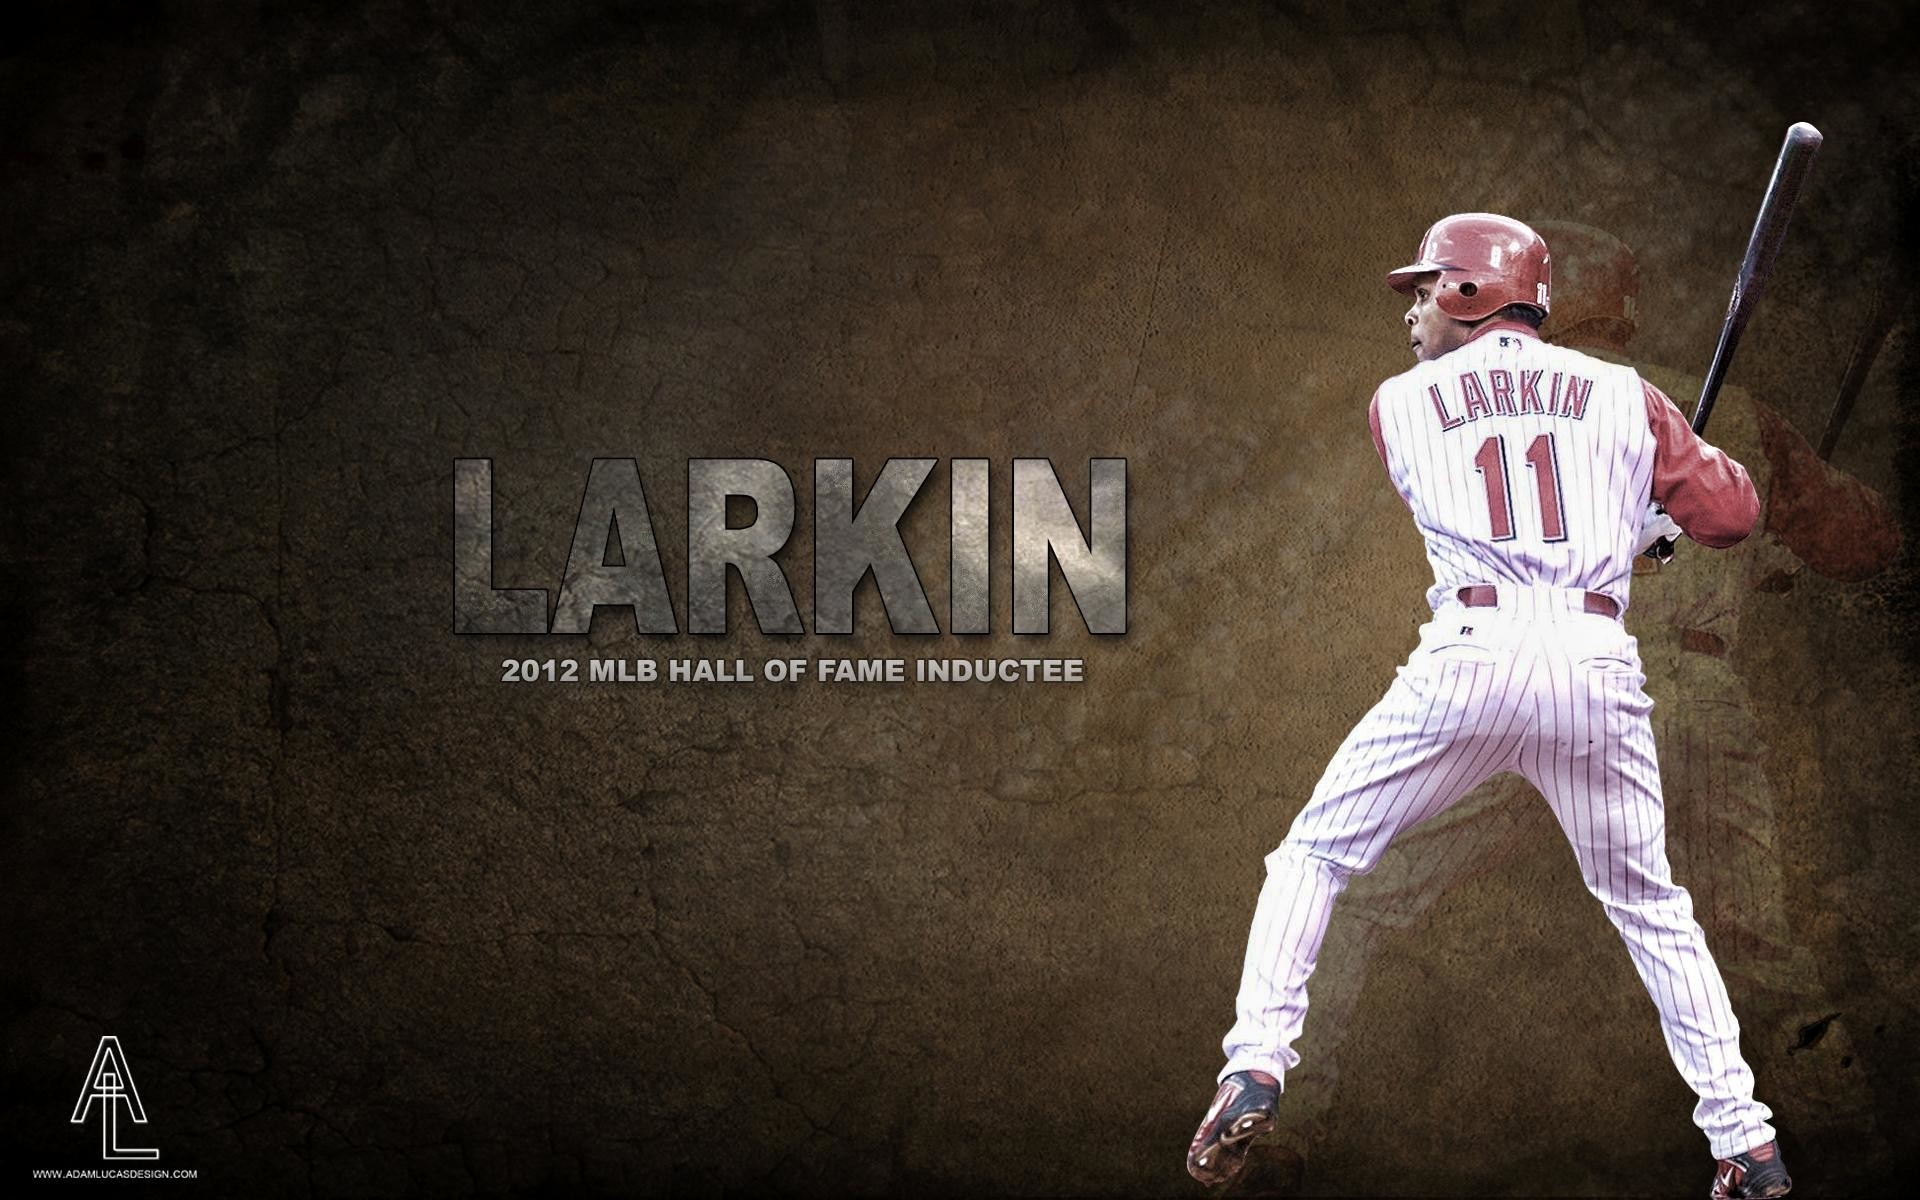 1920x1200 baseball player wallpaper #263054